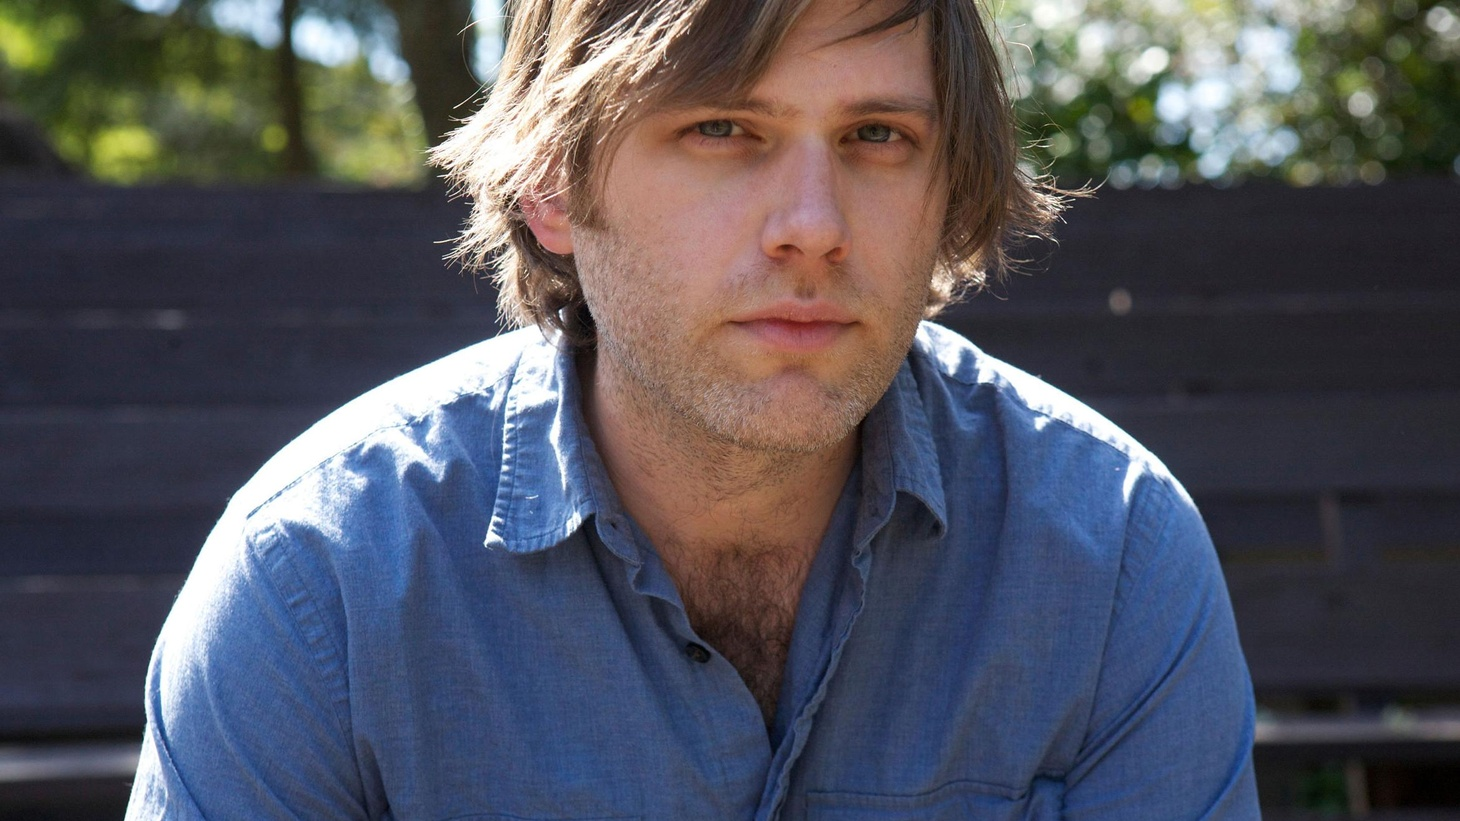 Eric D Johnson has been on a musical journey as front-man for Fruit Bats as well as a sideman for Vetiver and The Shins for the last 10 years. But on his latest release...